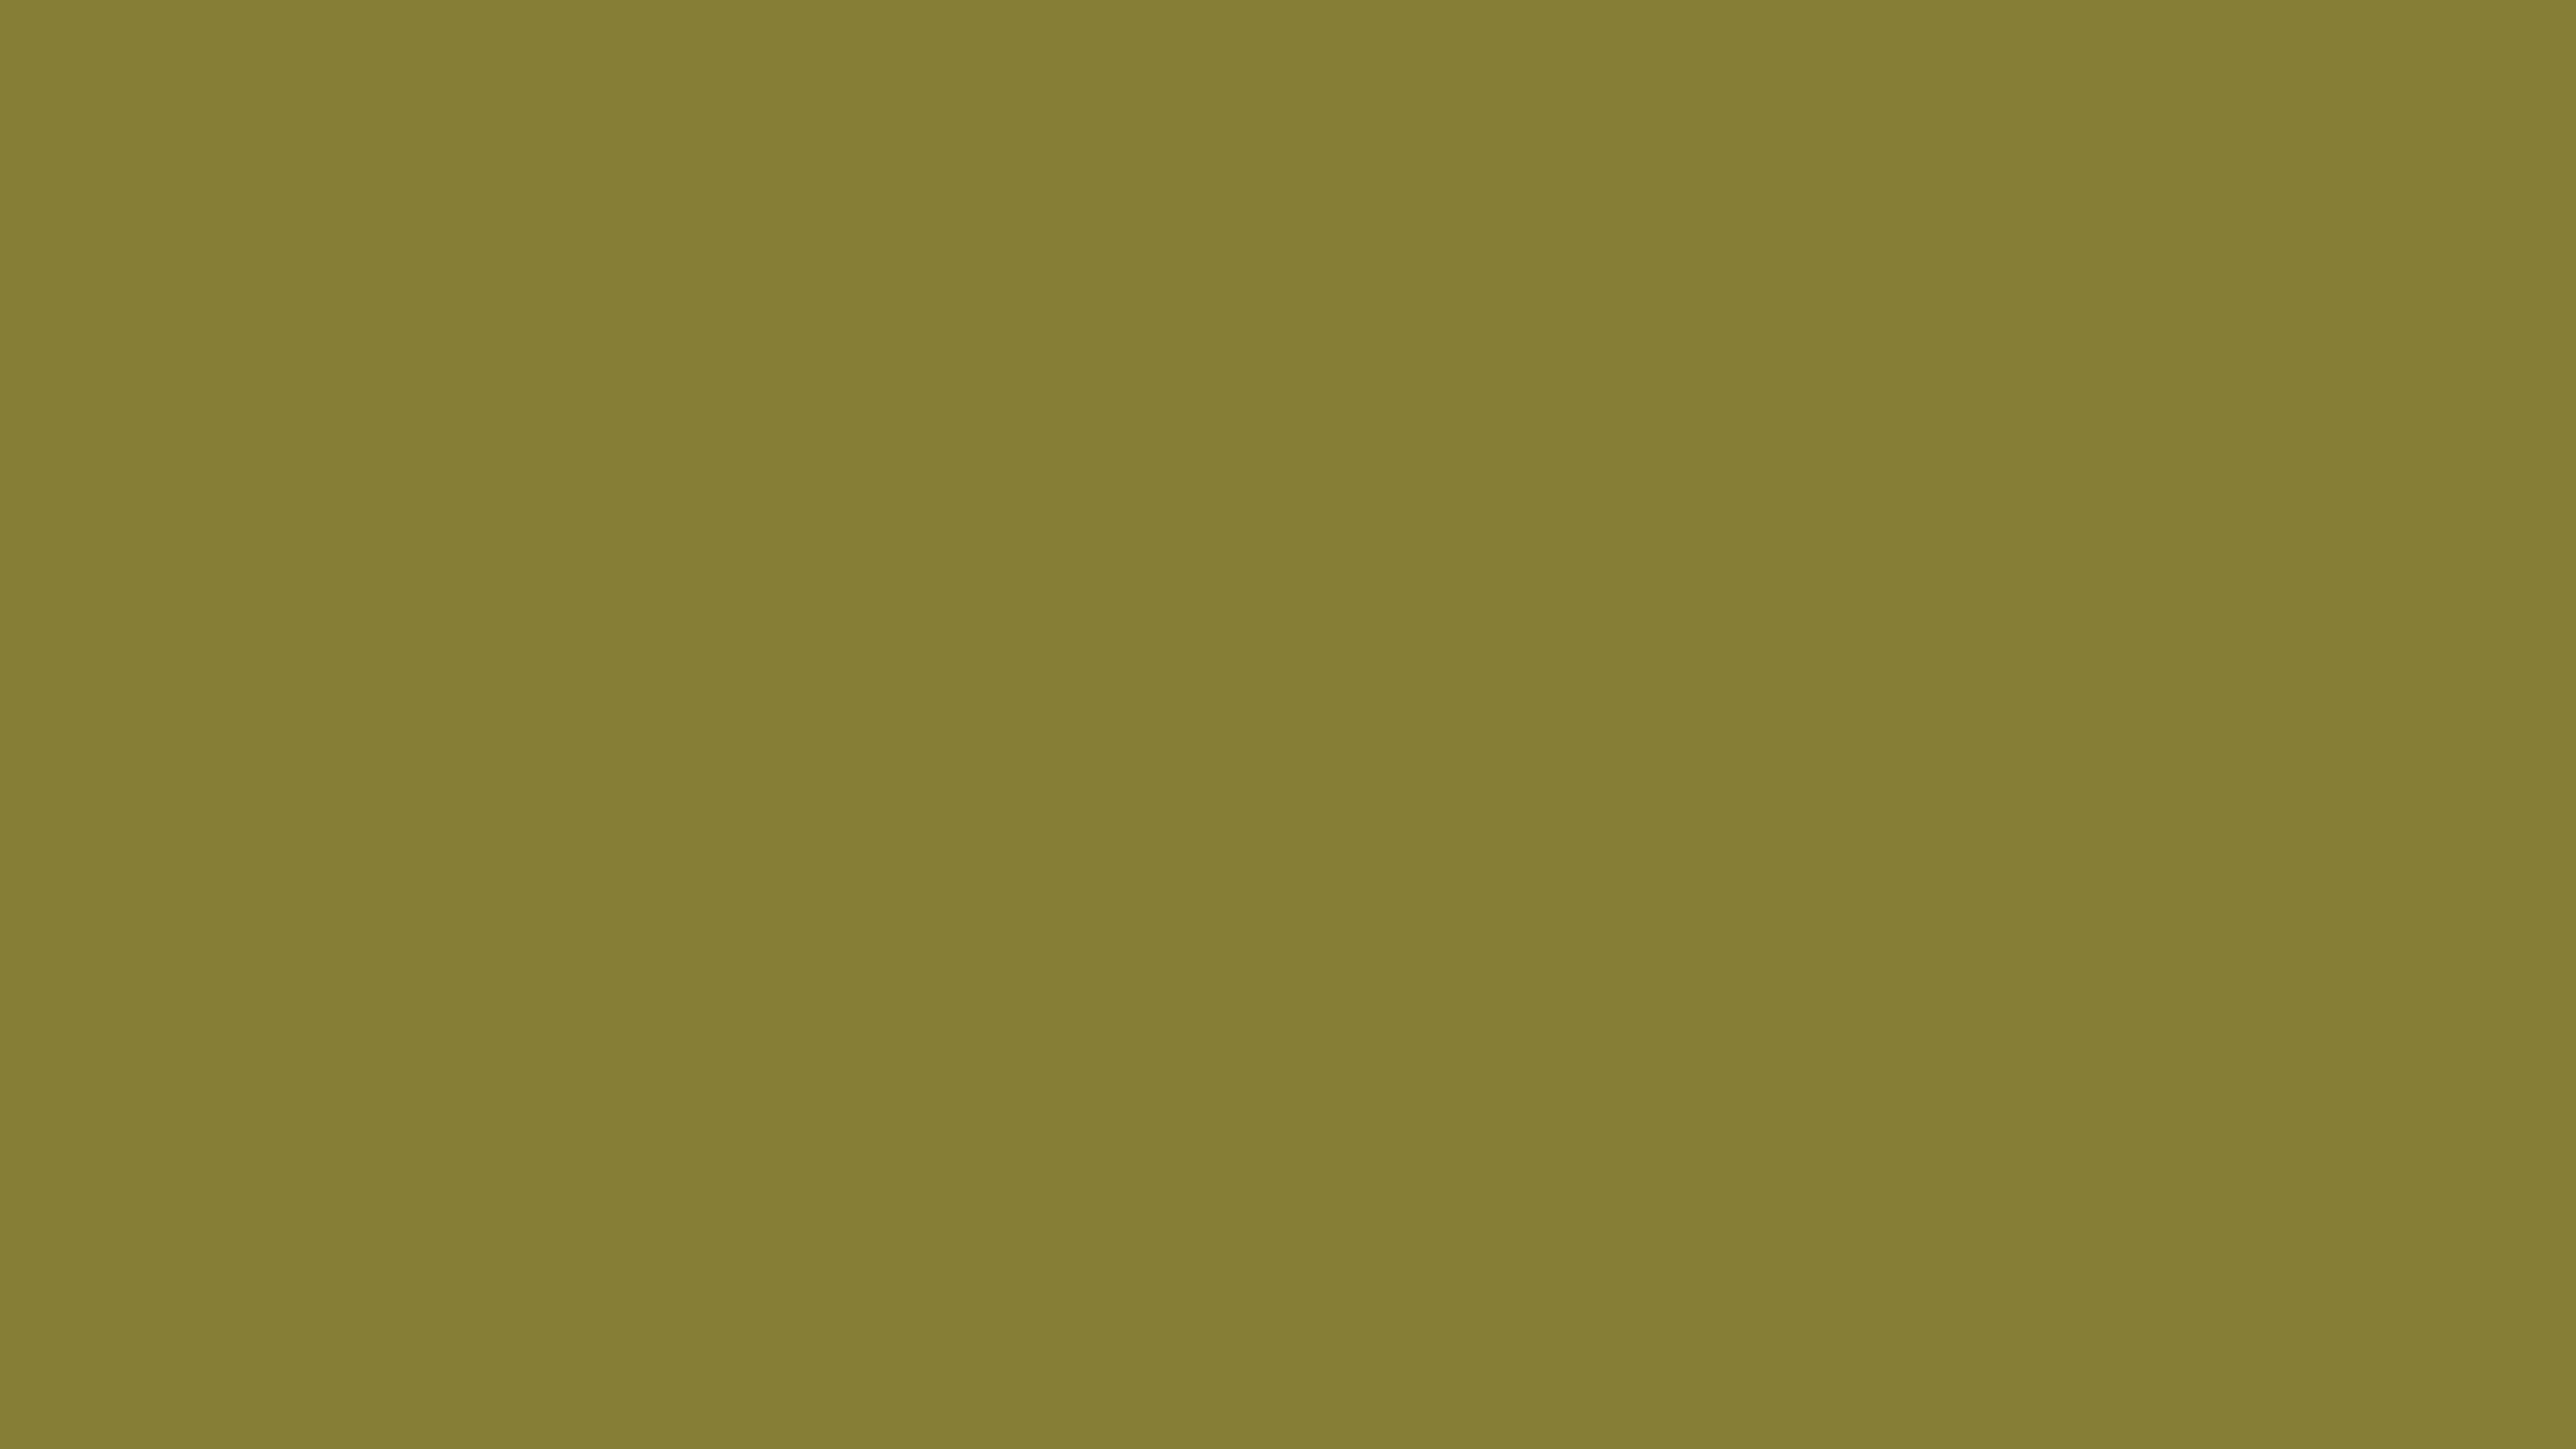 5120x2880 Old Moss Green Solid Color Background